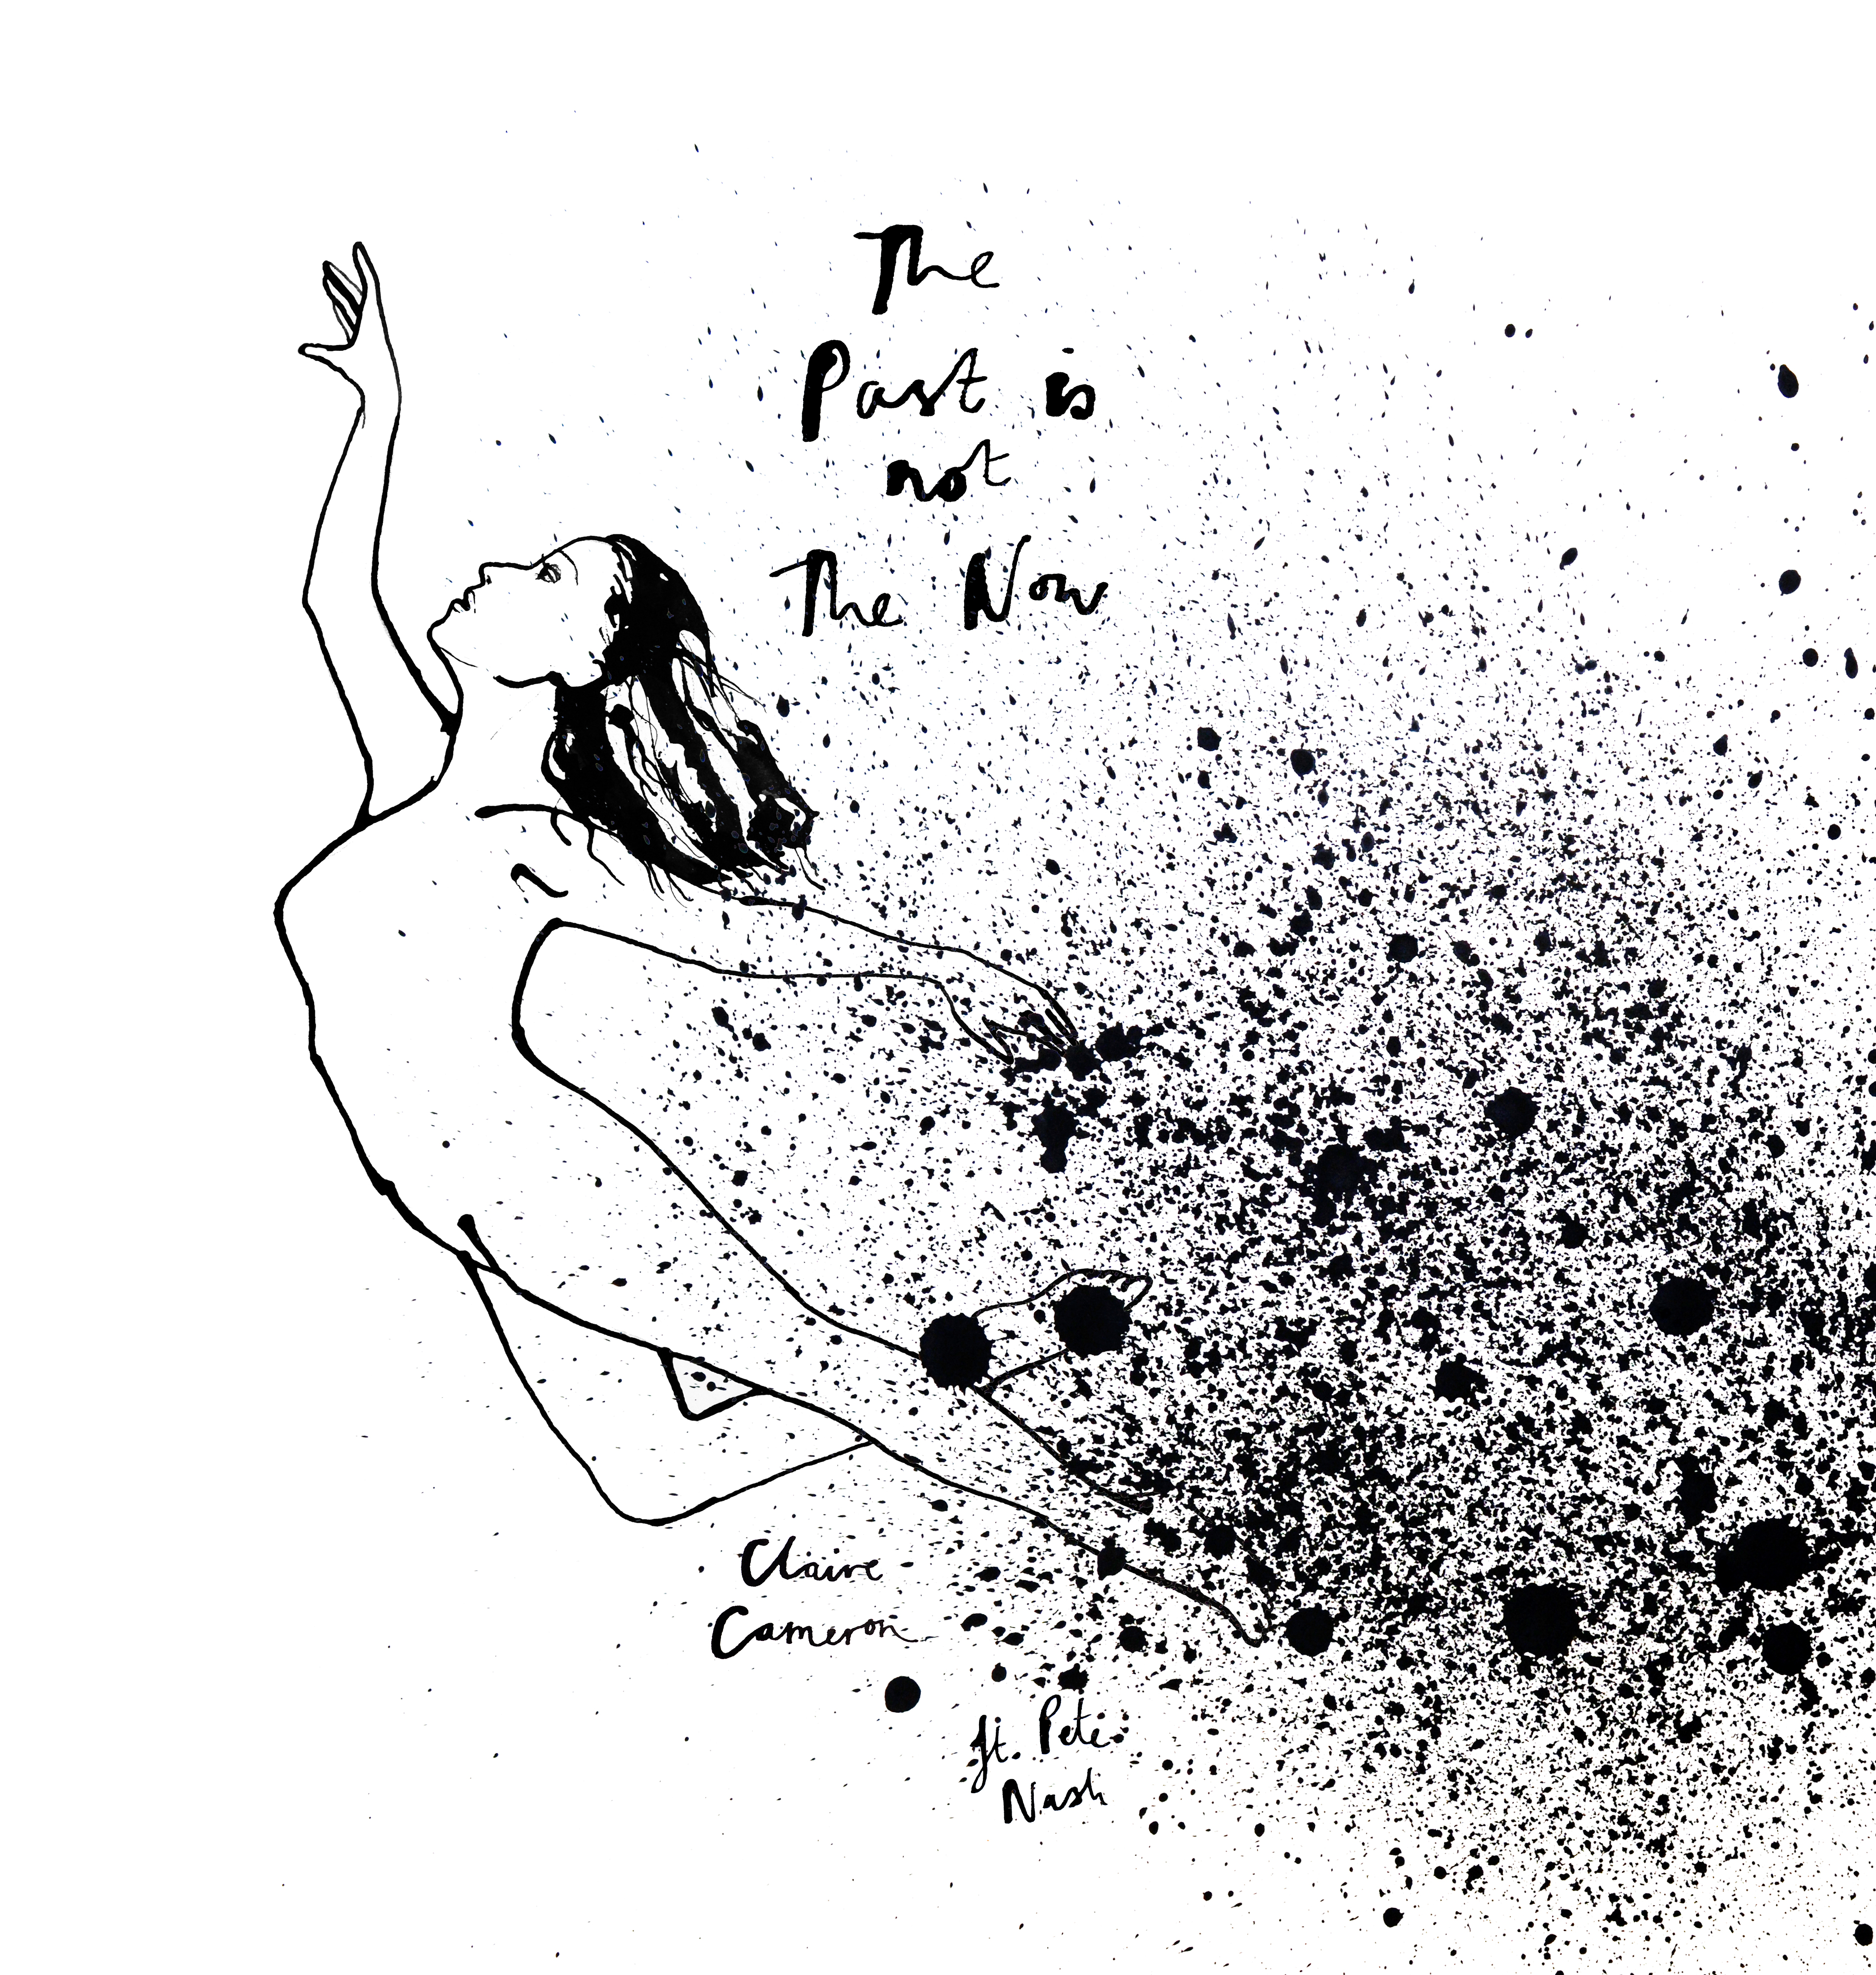 The Past Is Not The Now Claire Cameron feat. Pete Nash, Artwork by Chloe Kutkus Morton